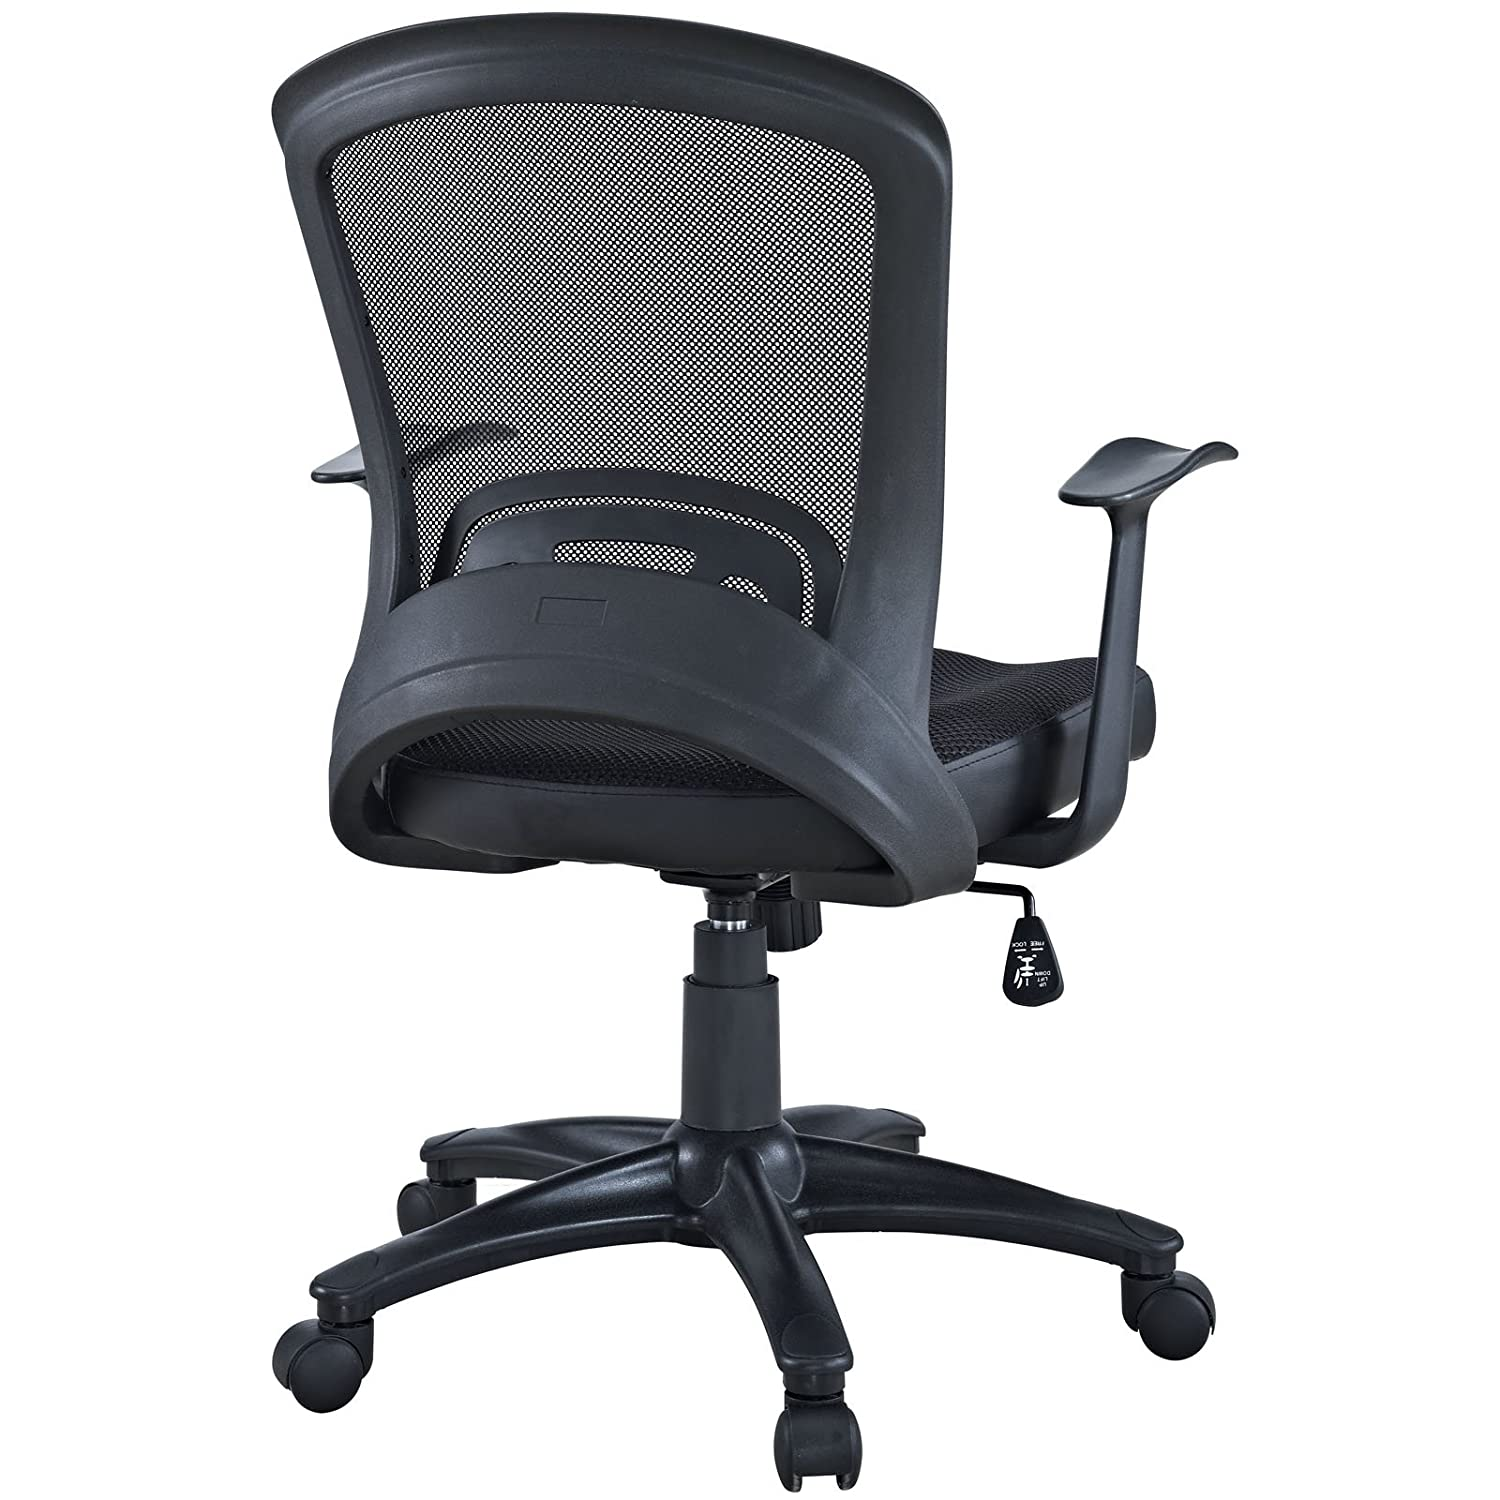 EEI-756-BLK Modway Pulse Mesh Office Chair with Adjustable Black Vinyl Seat Modway Inc